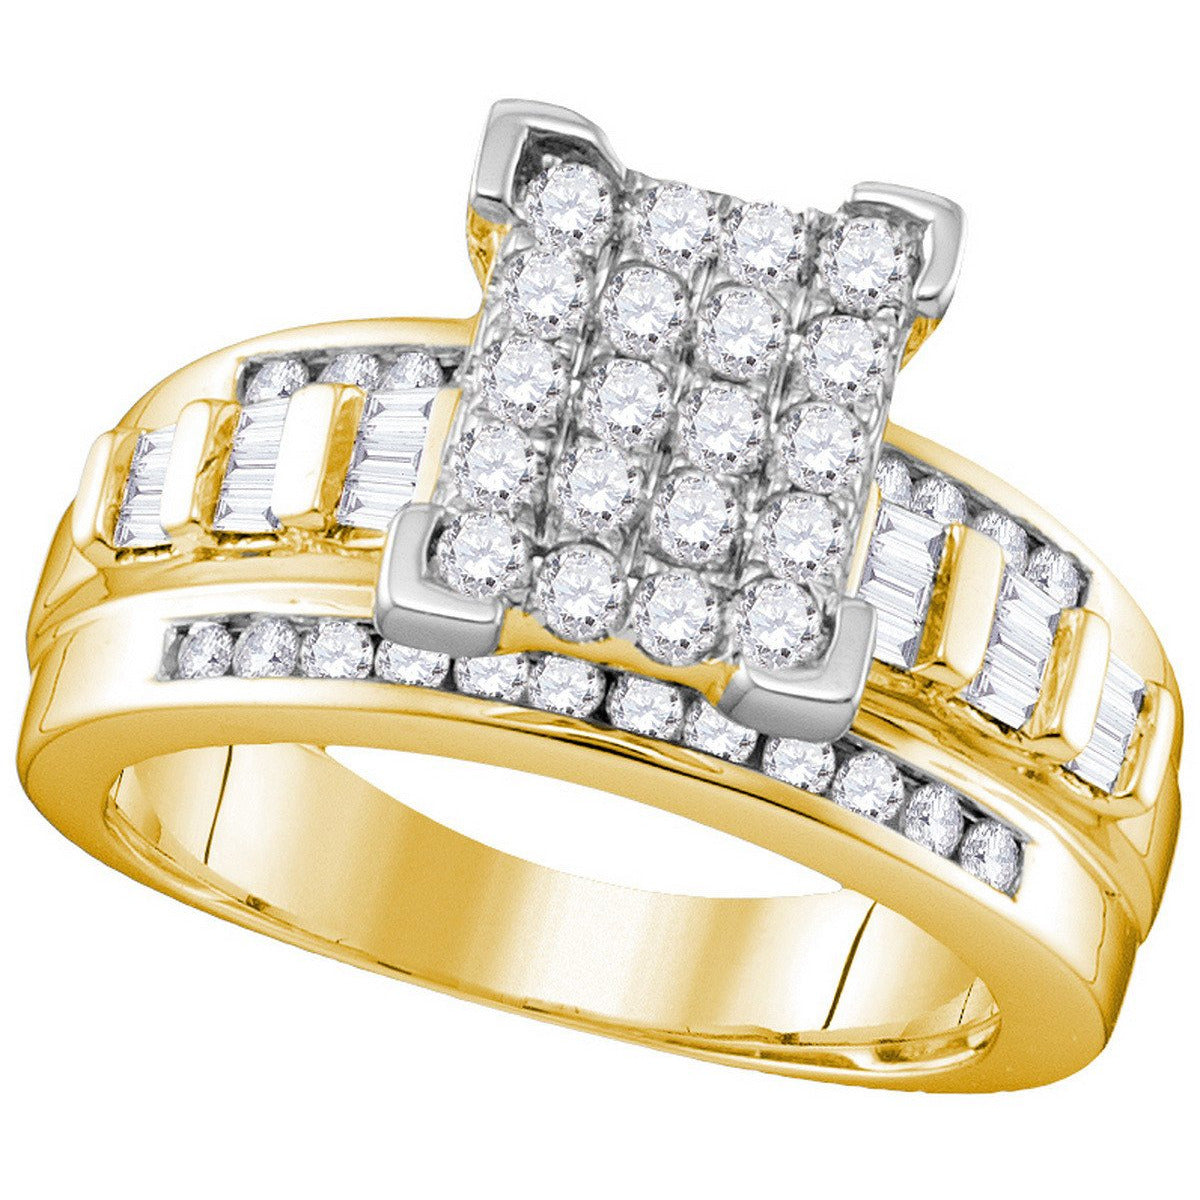 10k Yellow Gold Diamond Cindy's Dream Cinderella Bridal Wedding Engagement Ring 2 Cttw Size 7 111617 - shirin-diamonds